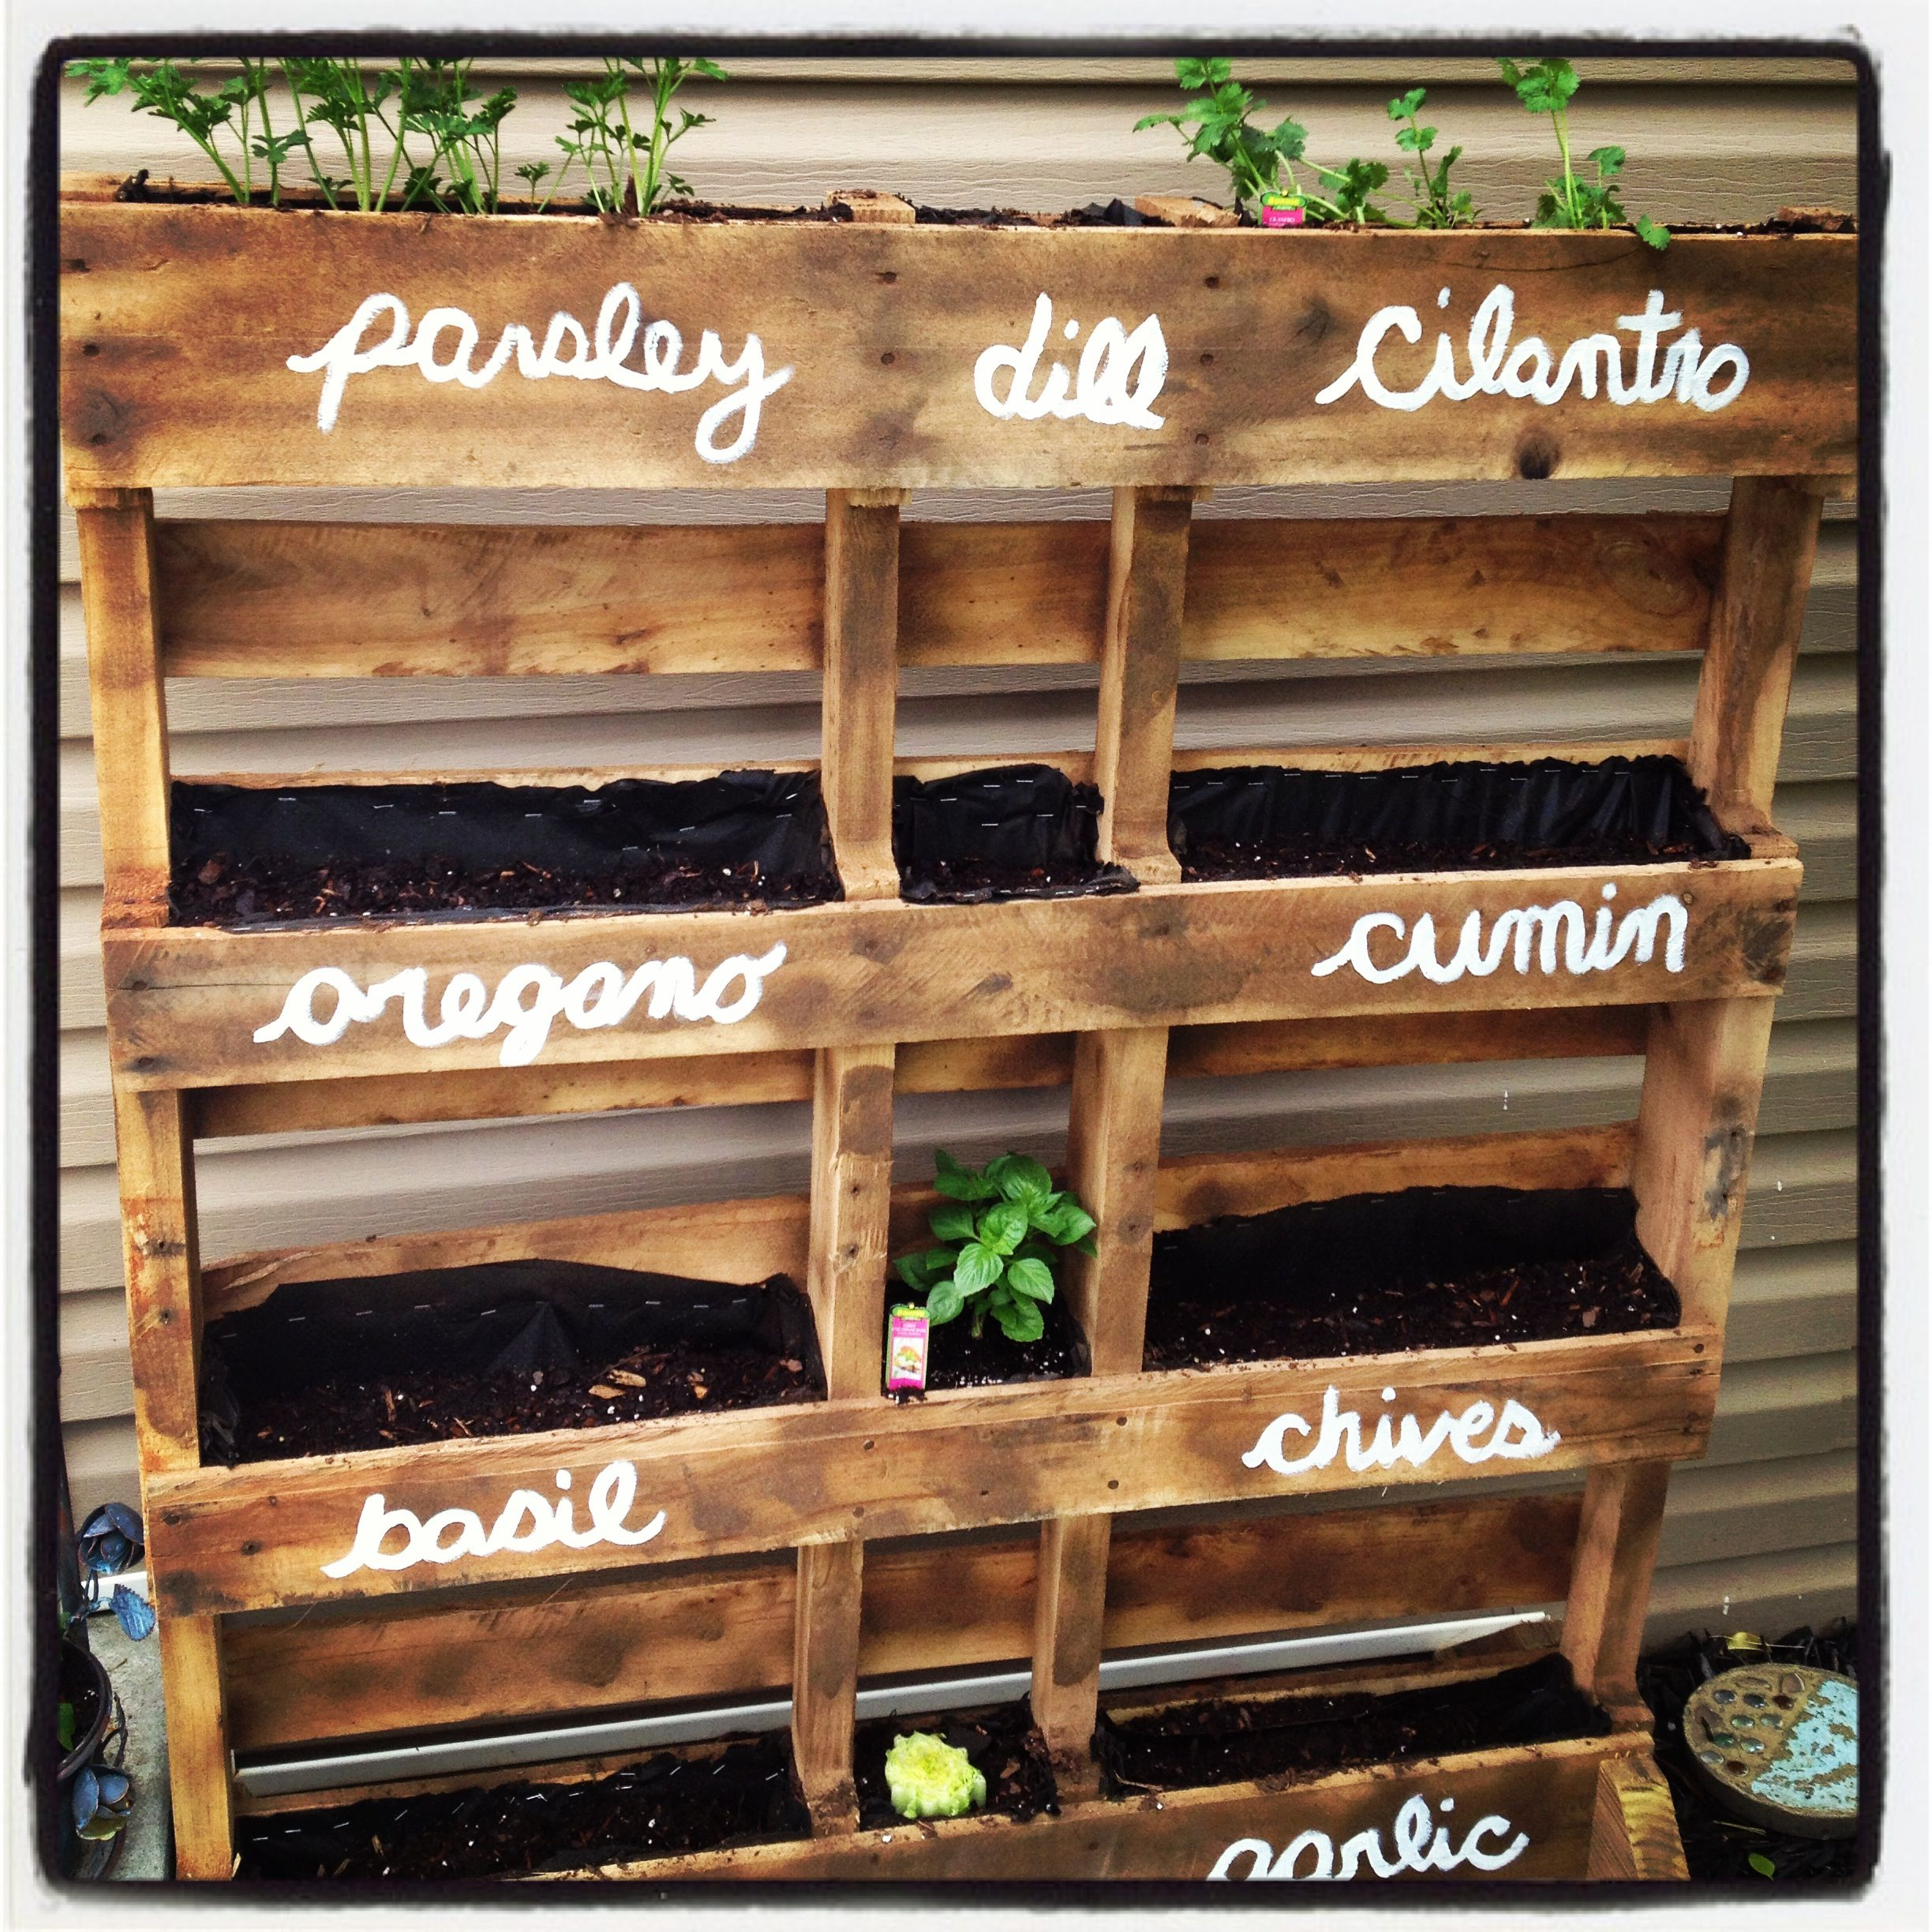 my pallet herb garden Josh made me...still have a few more